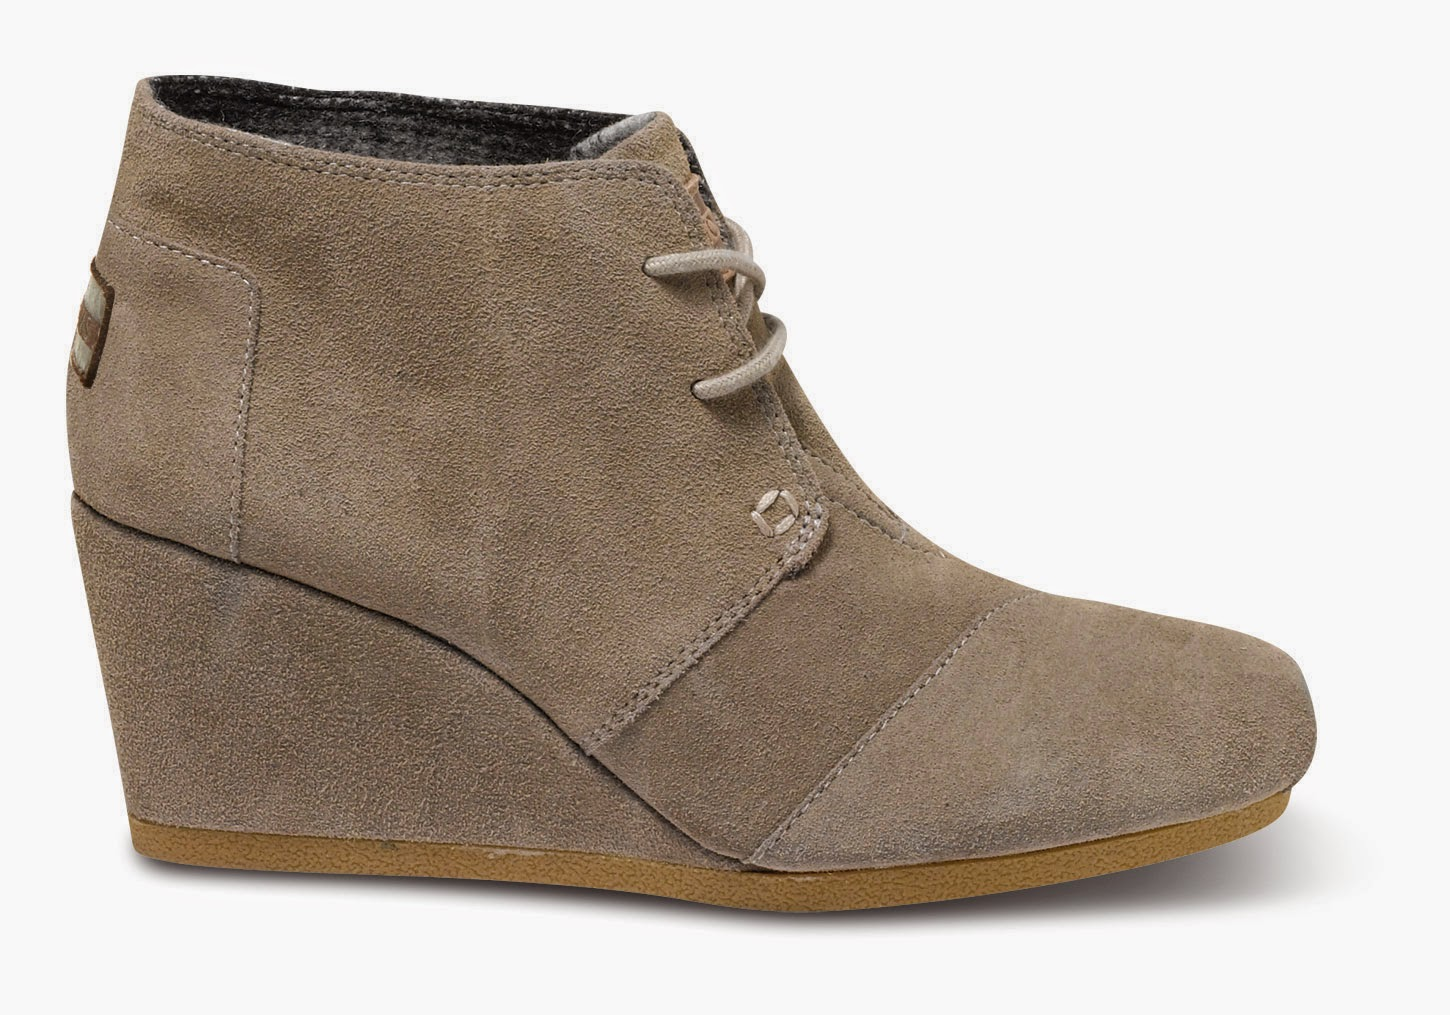 http://www.toms.com/featured-shops/taupe-suede-womens-desert-wedges